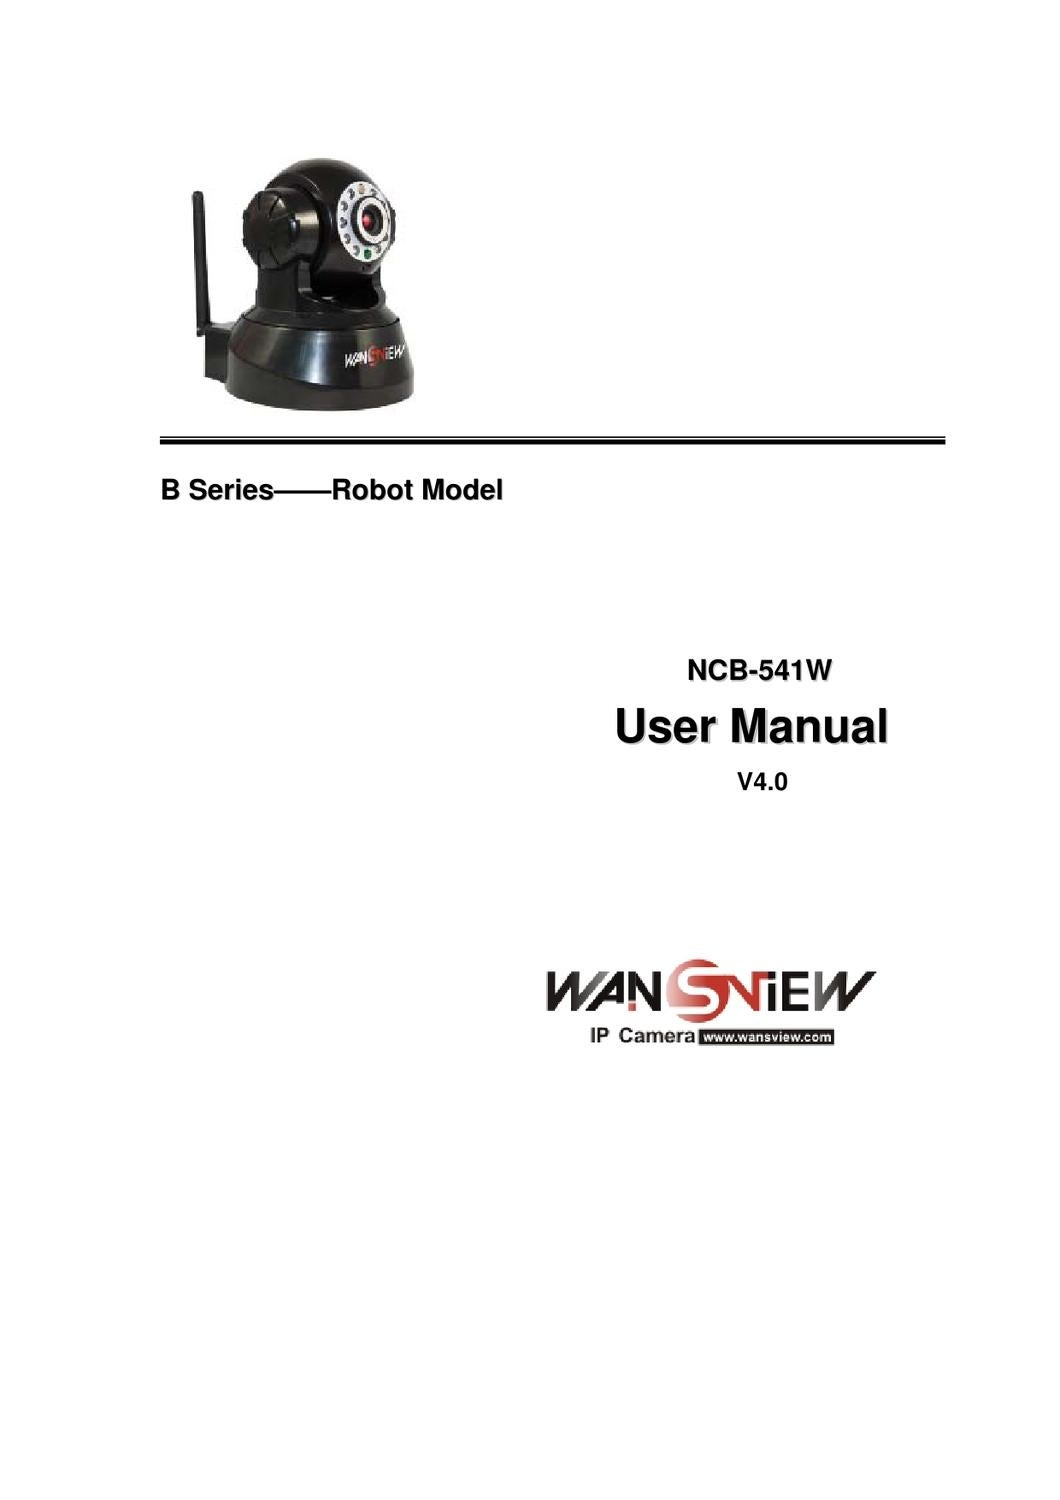 Wansview IPCamera User Manual(NCB-541W) by LAWRENCE CAMPOS